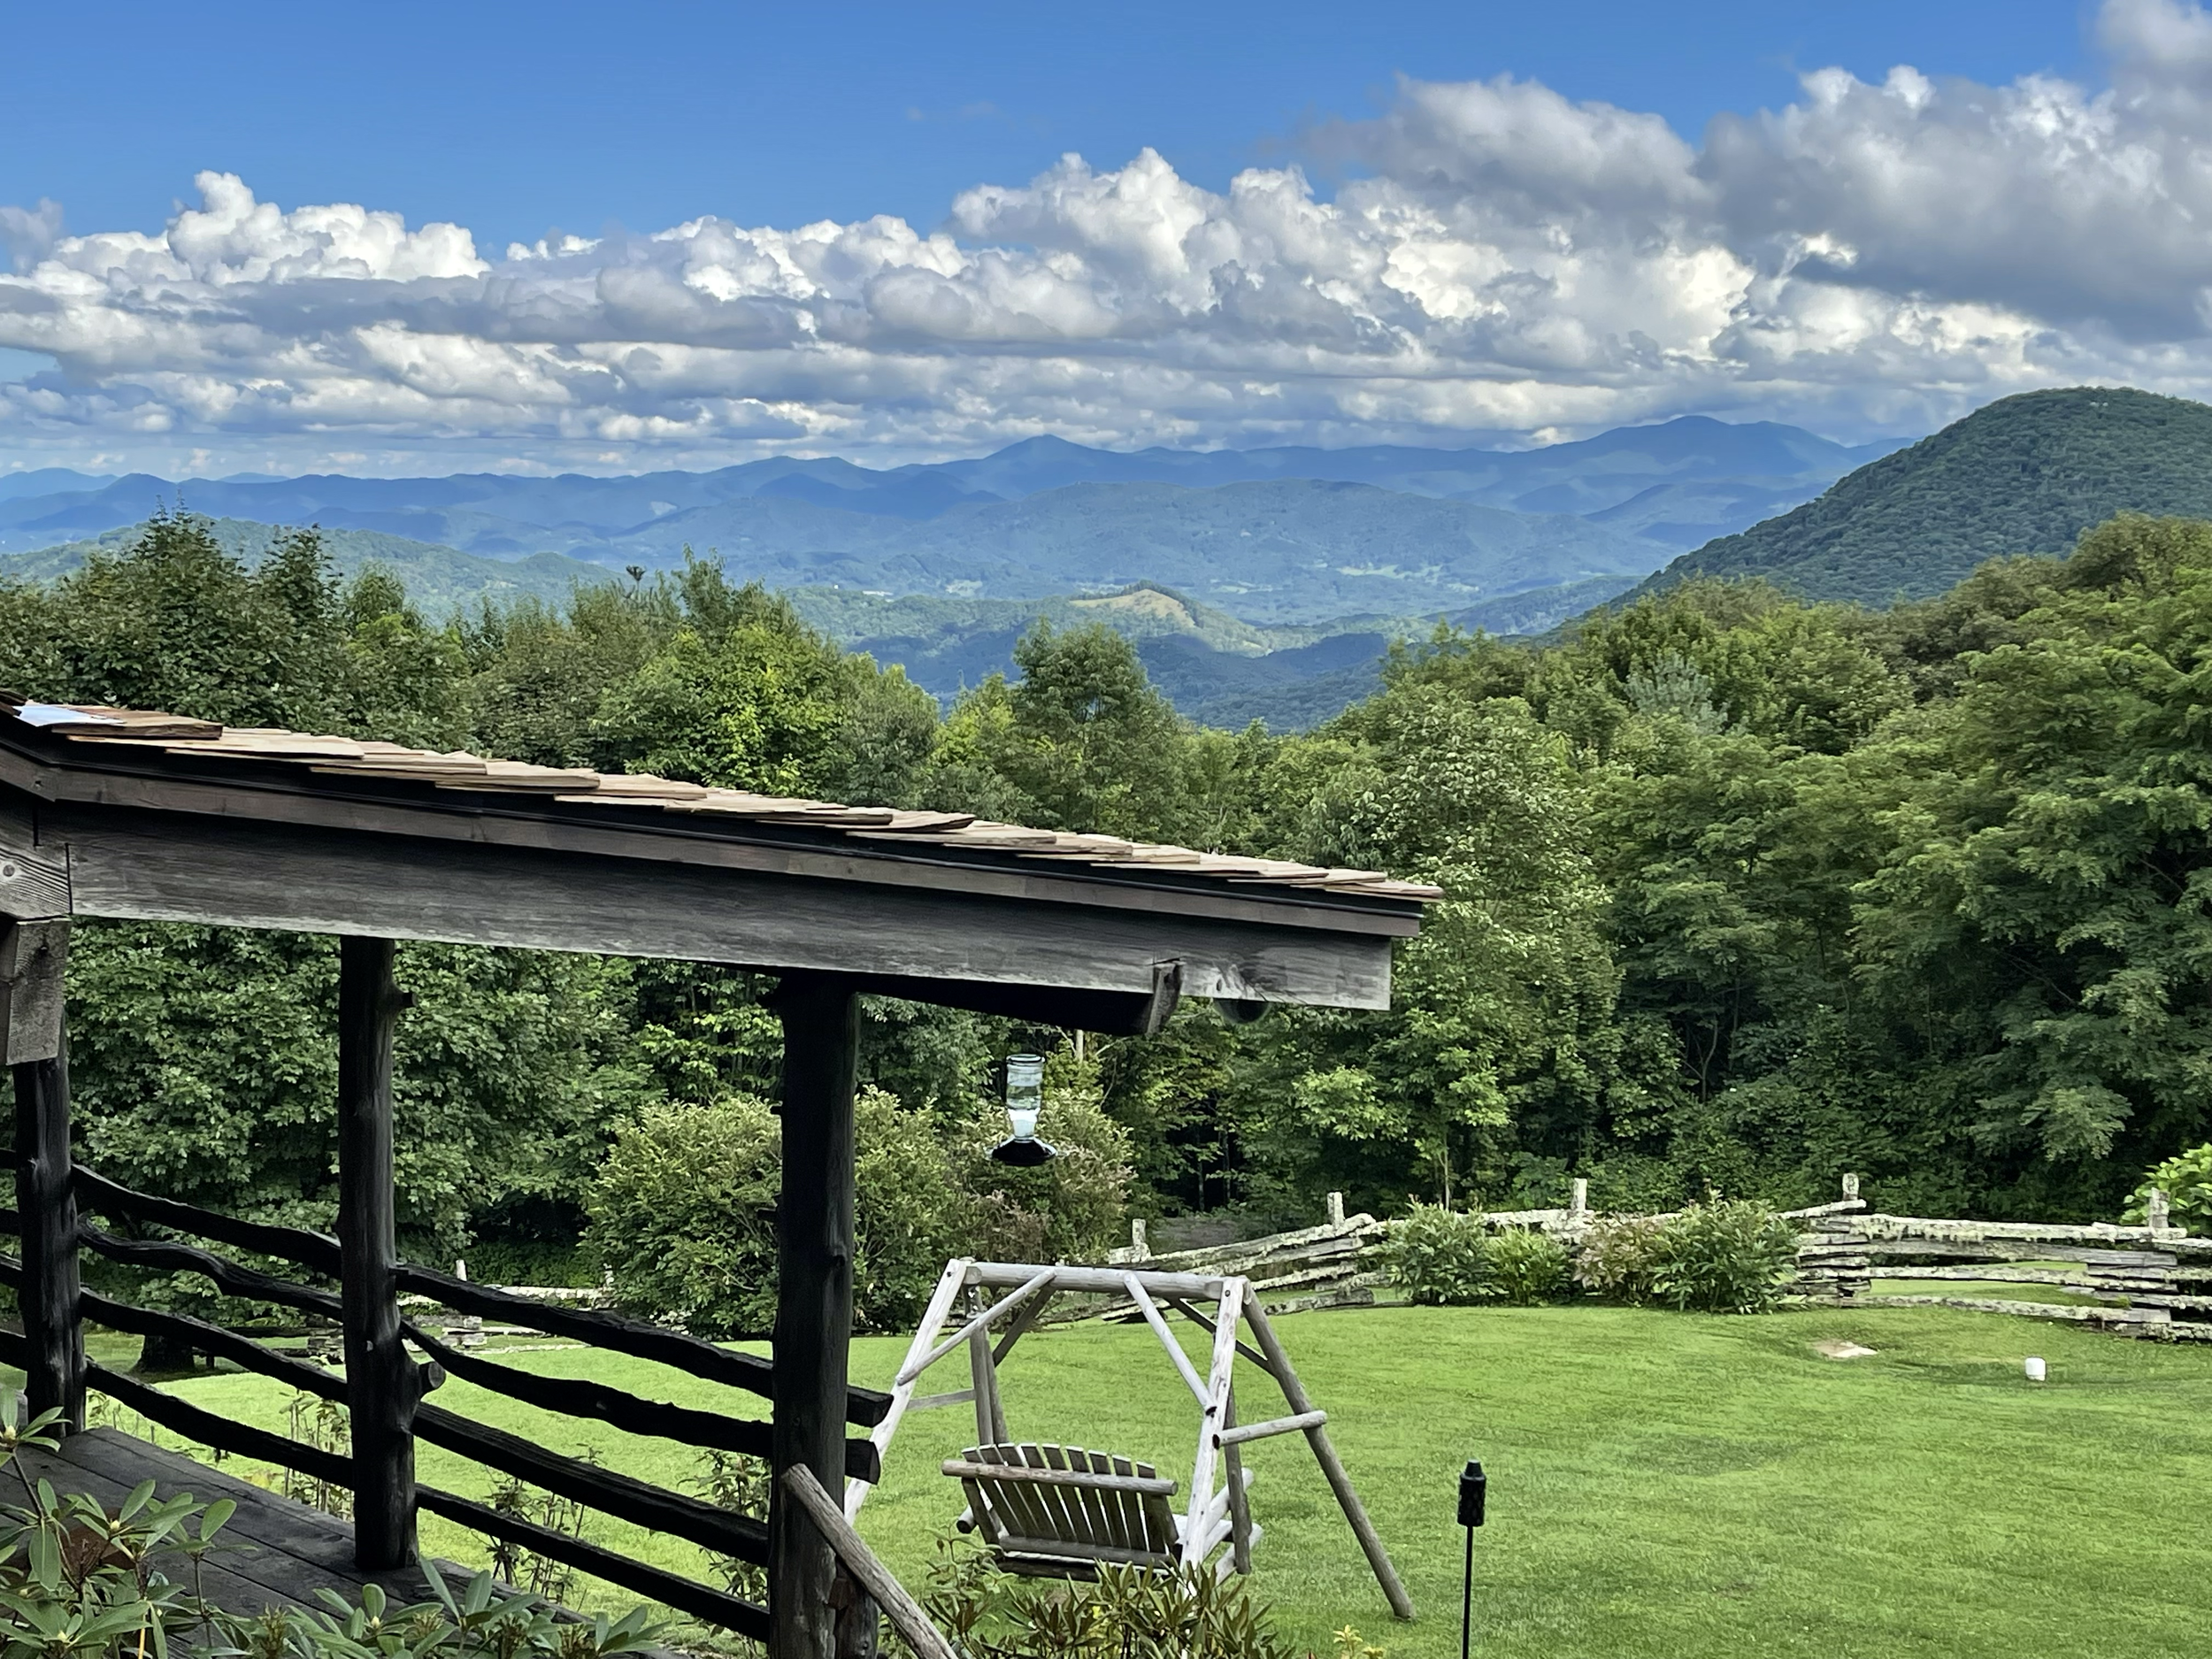 View of the Great Smoky Mountains from our balcony at The Swag, NC